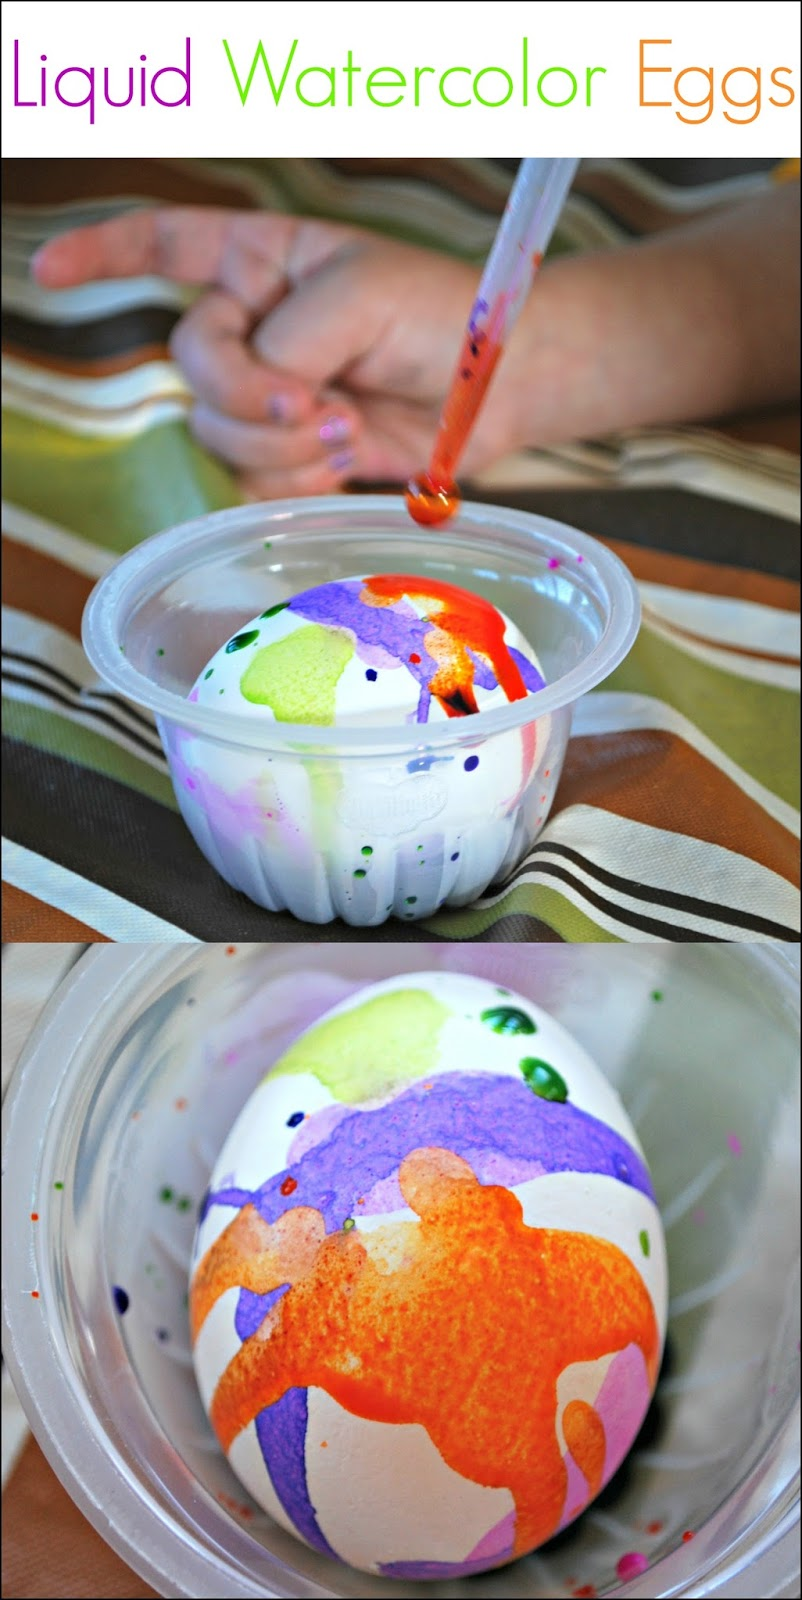 http://www.messforless.net/2014/03/liquid-watercolor-decorated-eggs.html